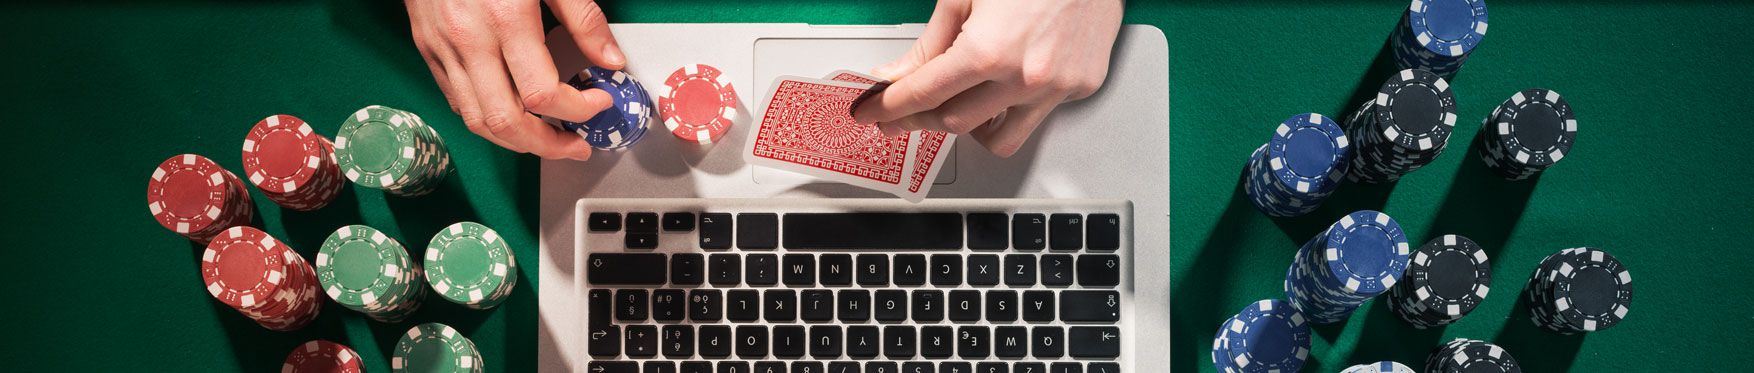 Play poker with queen casino